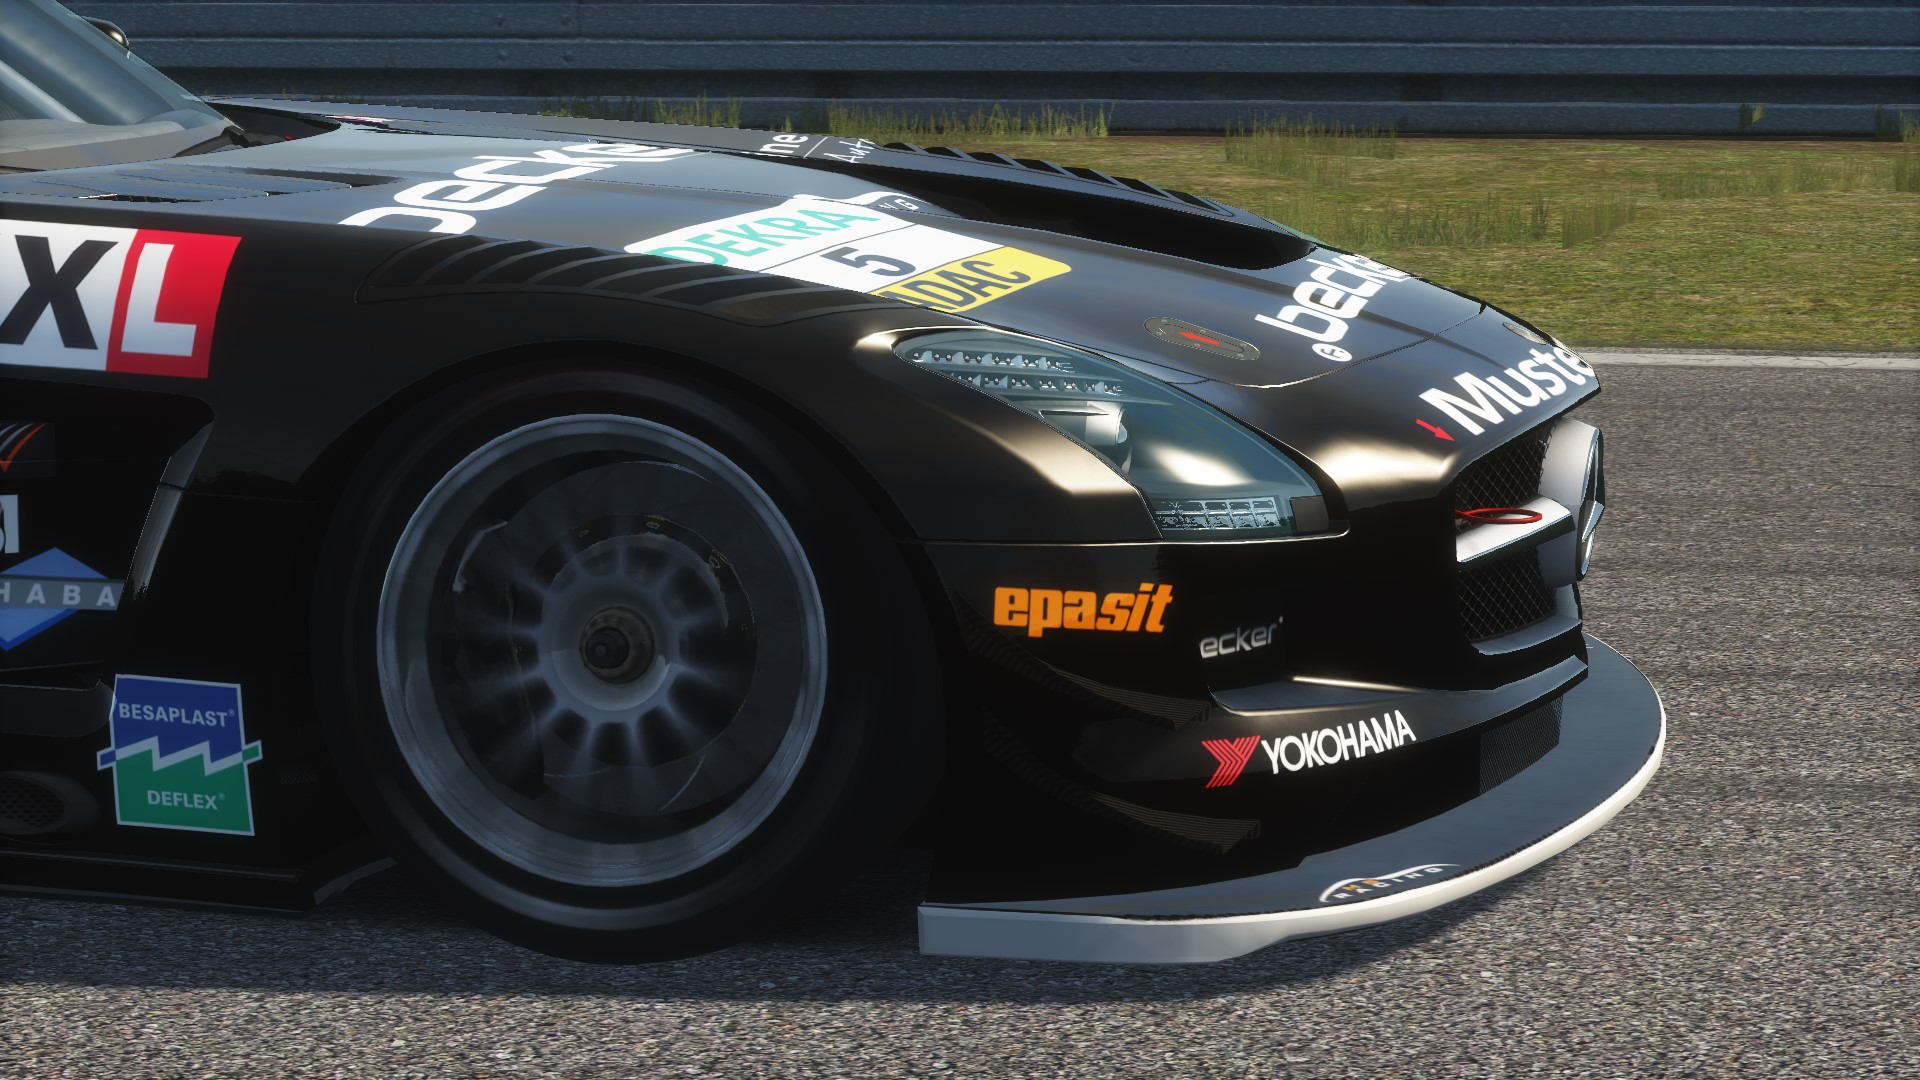 Screenshot_mercedes_sls_gt3_nurburgring_6-3-2015-18-9-54.jpg